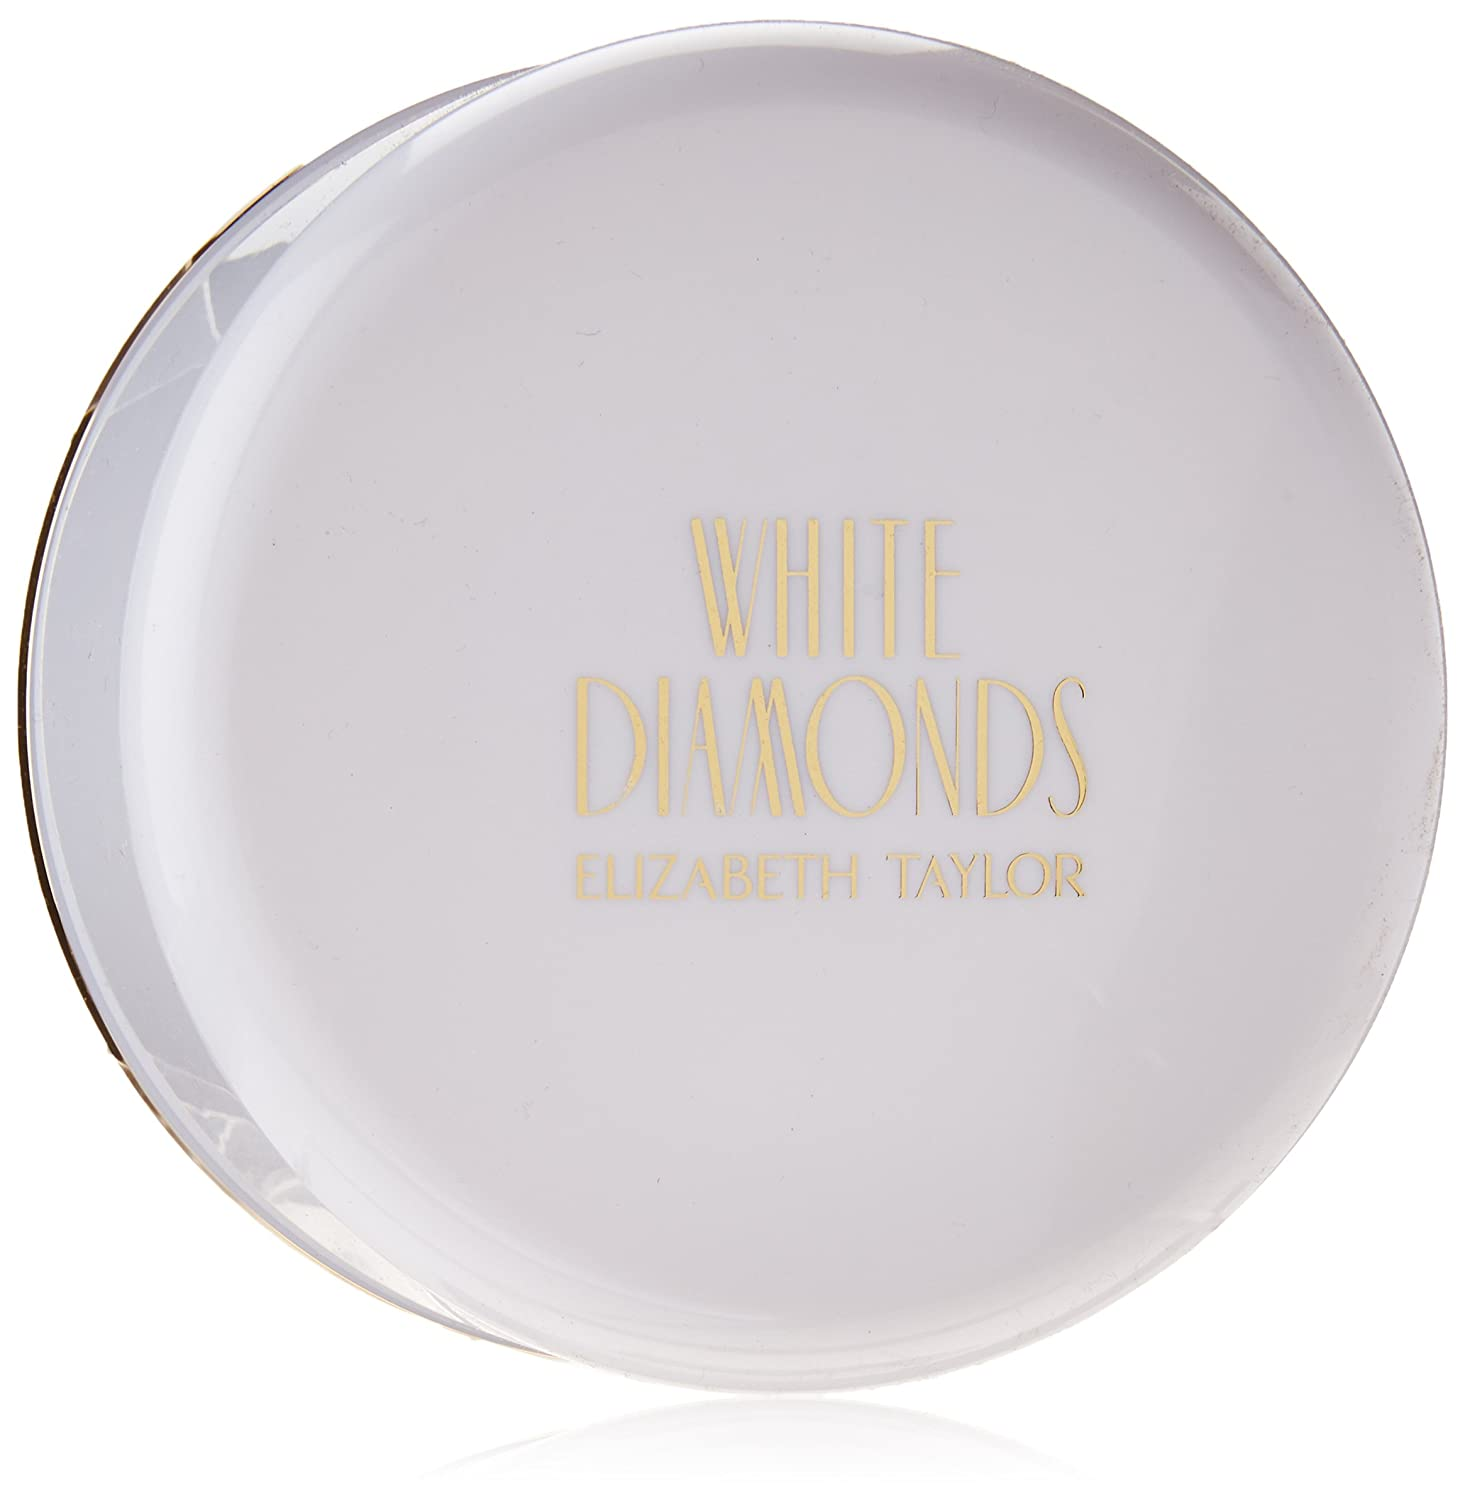 WHITE DIAMONDS von Elizabeth Taylor für Damen. PERFUMED BODY POWDER WITH PUFF 2.6 oz / 75 g 123381